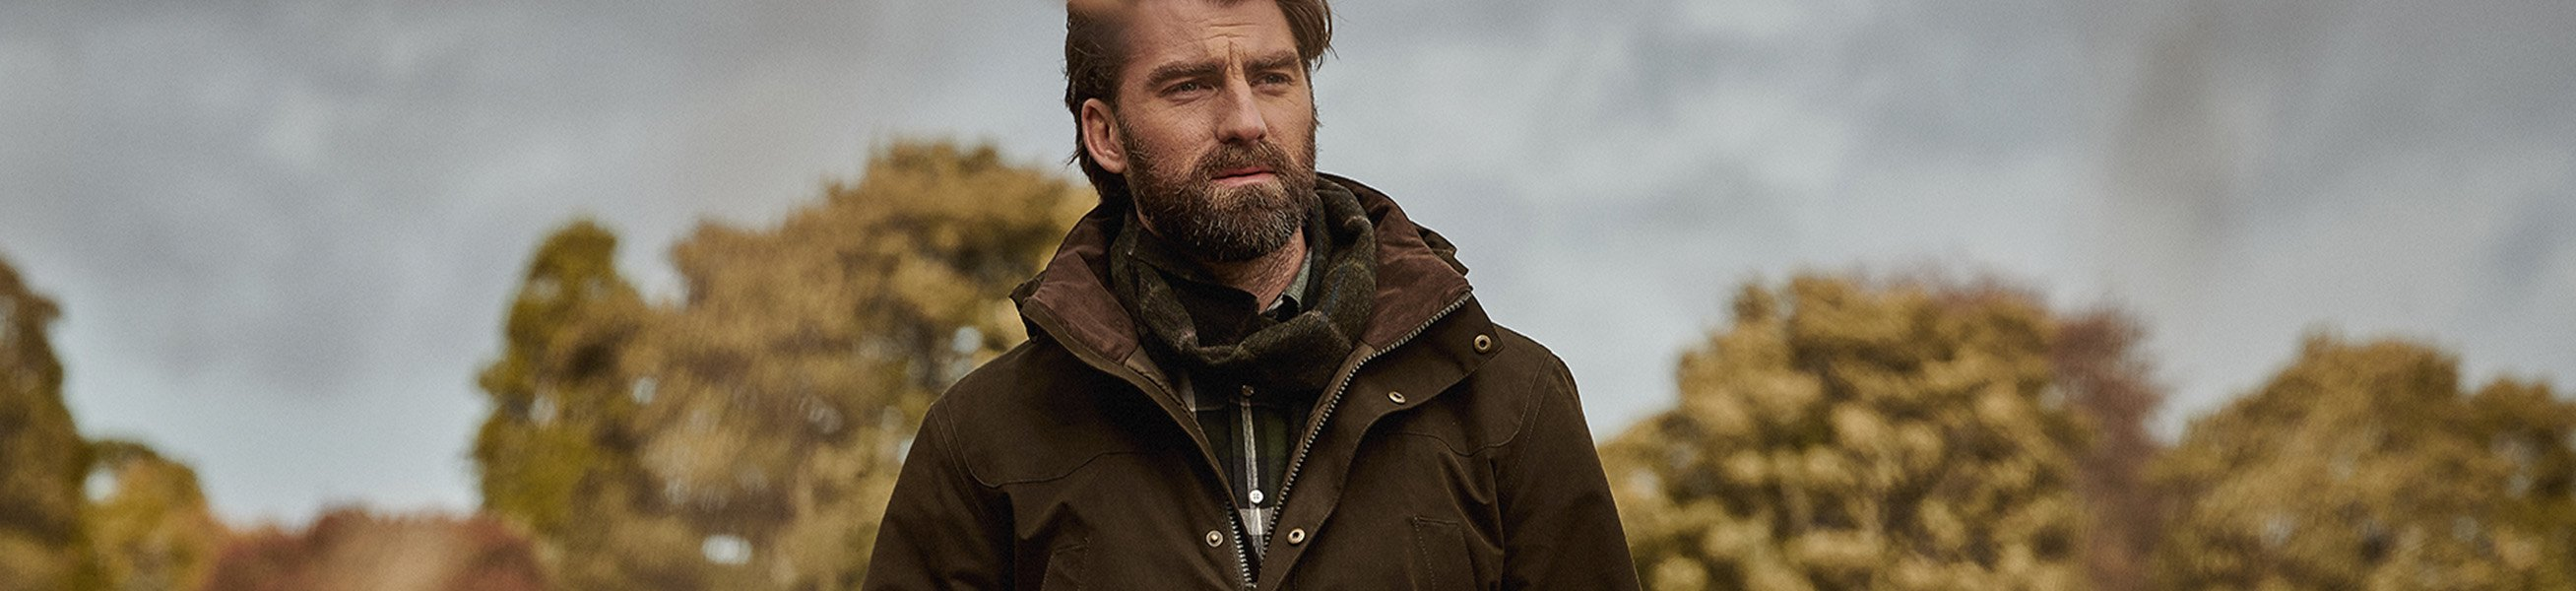 Barbour Men's Clothes